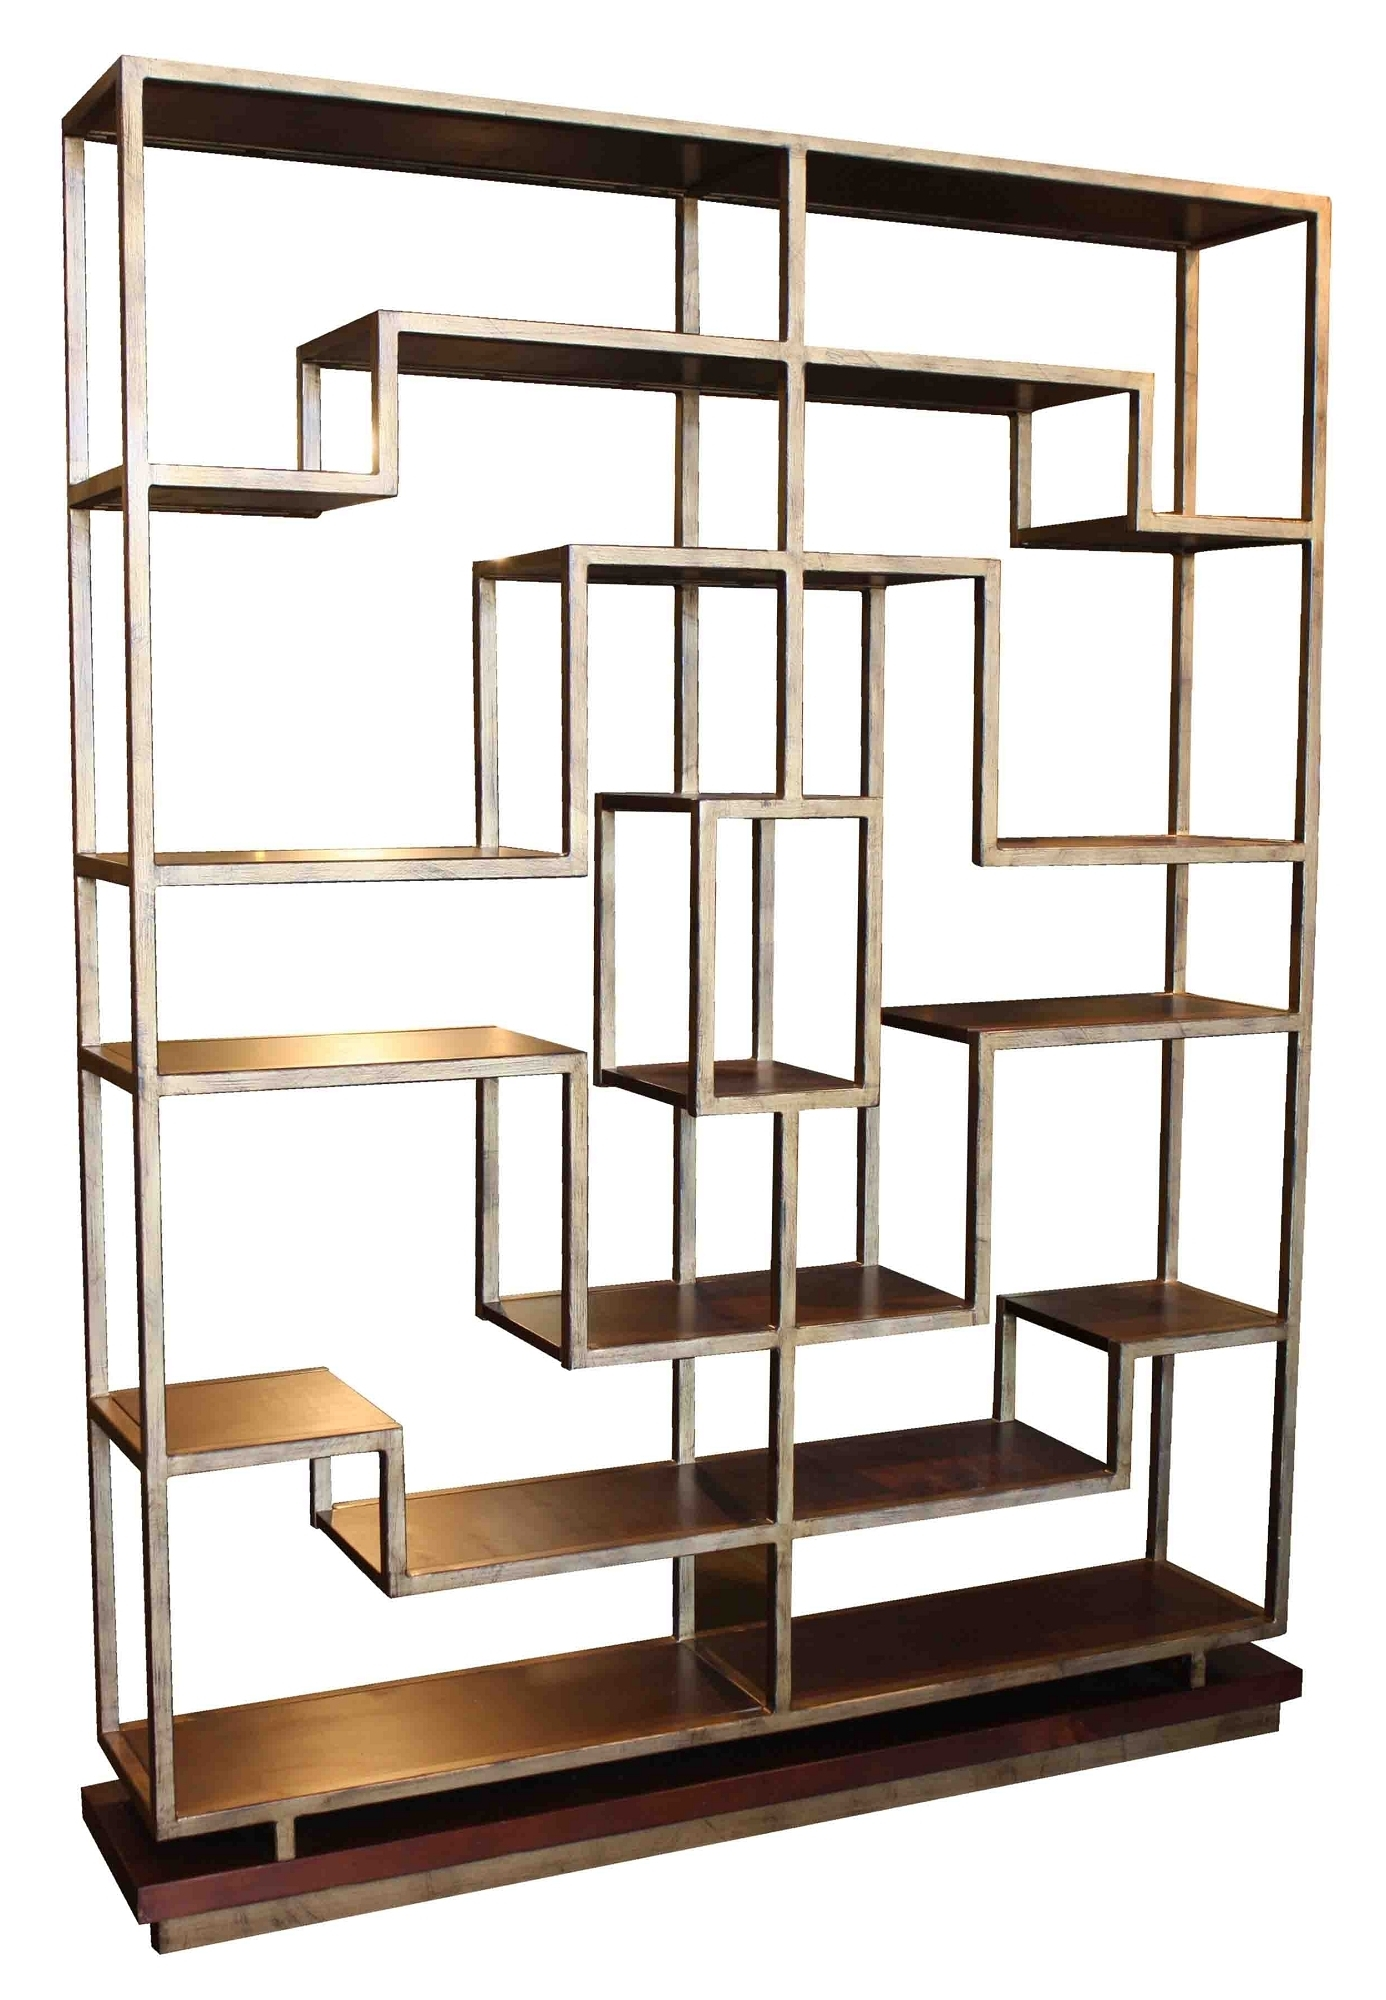 Wood And Metal Bookcases Within Most Popular Bookcases Ideas: Bookcases Wood Metal And Glass Crate And Barrel (View 12 of 15)